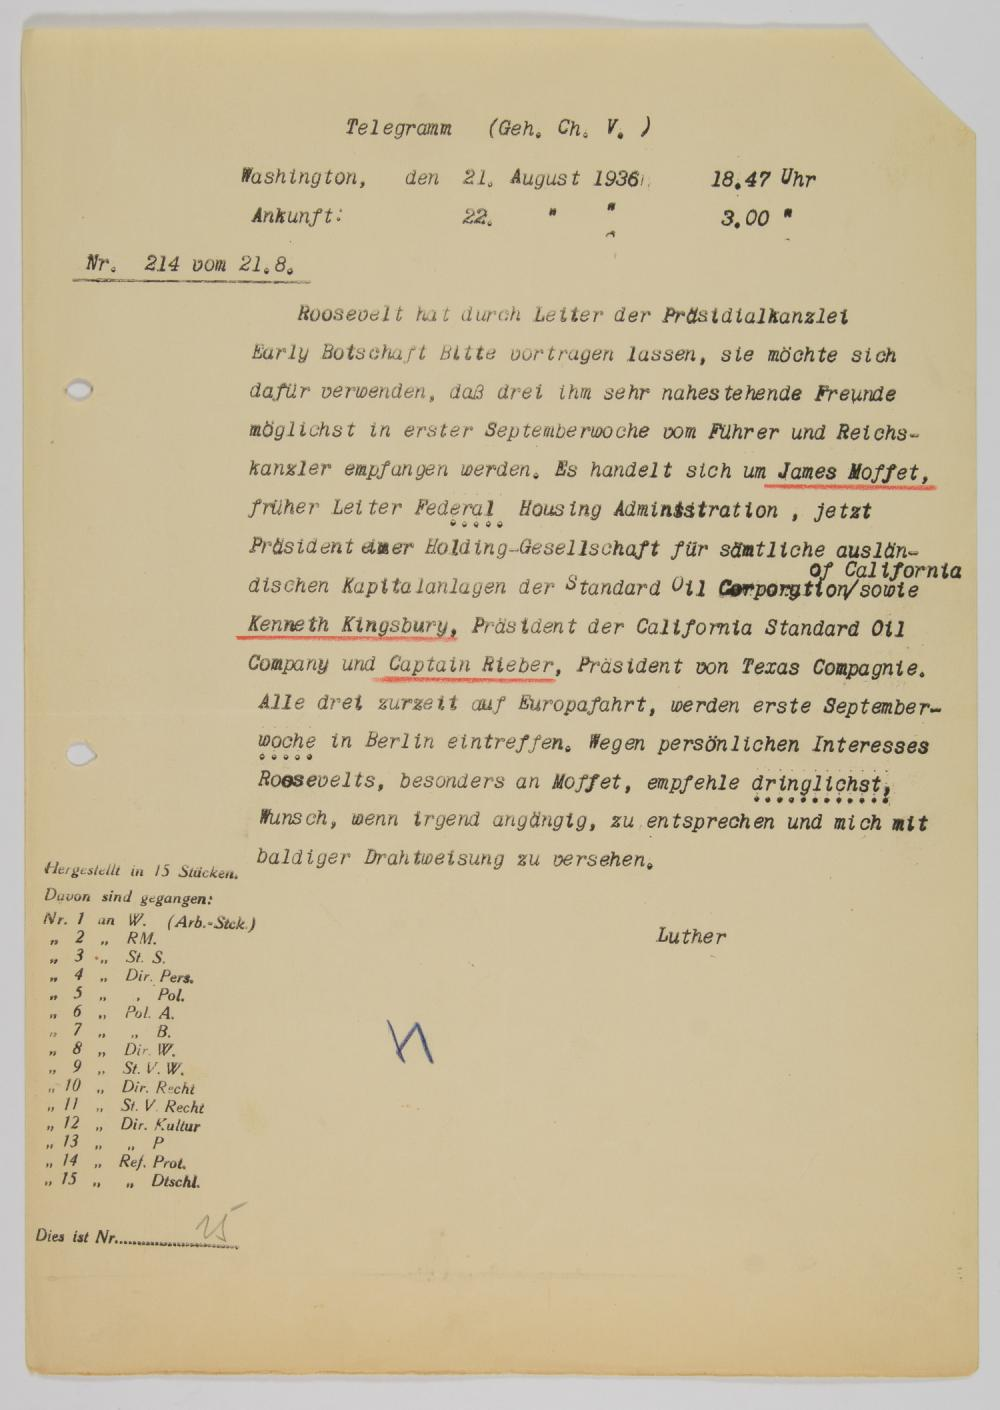 FRANKLIN ROOSEVELT ASKS THAT HIS FRIENDS BE GRANTED AN AUDIENCE WITH ADOLF HITLER